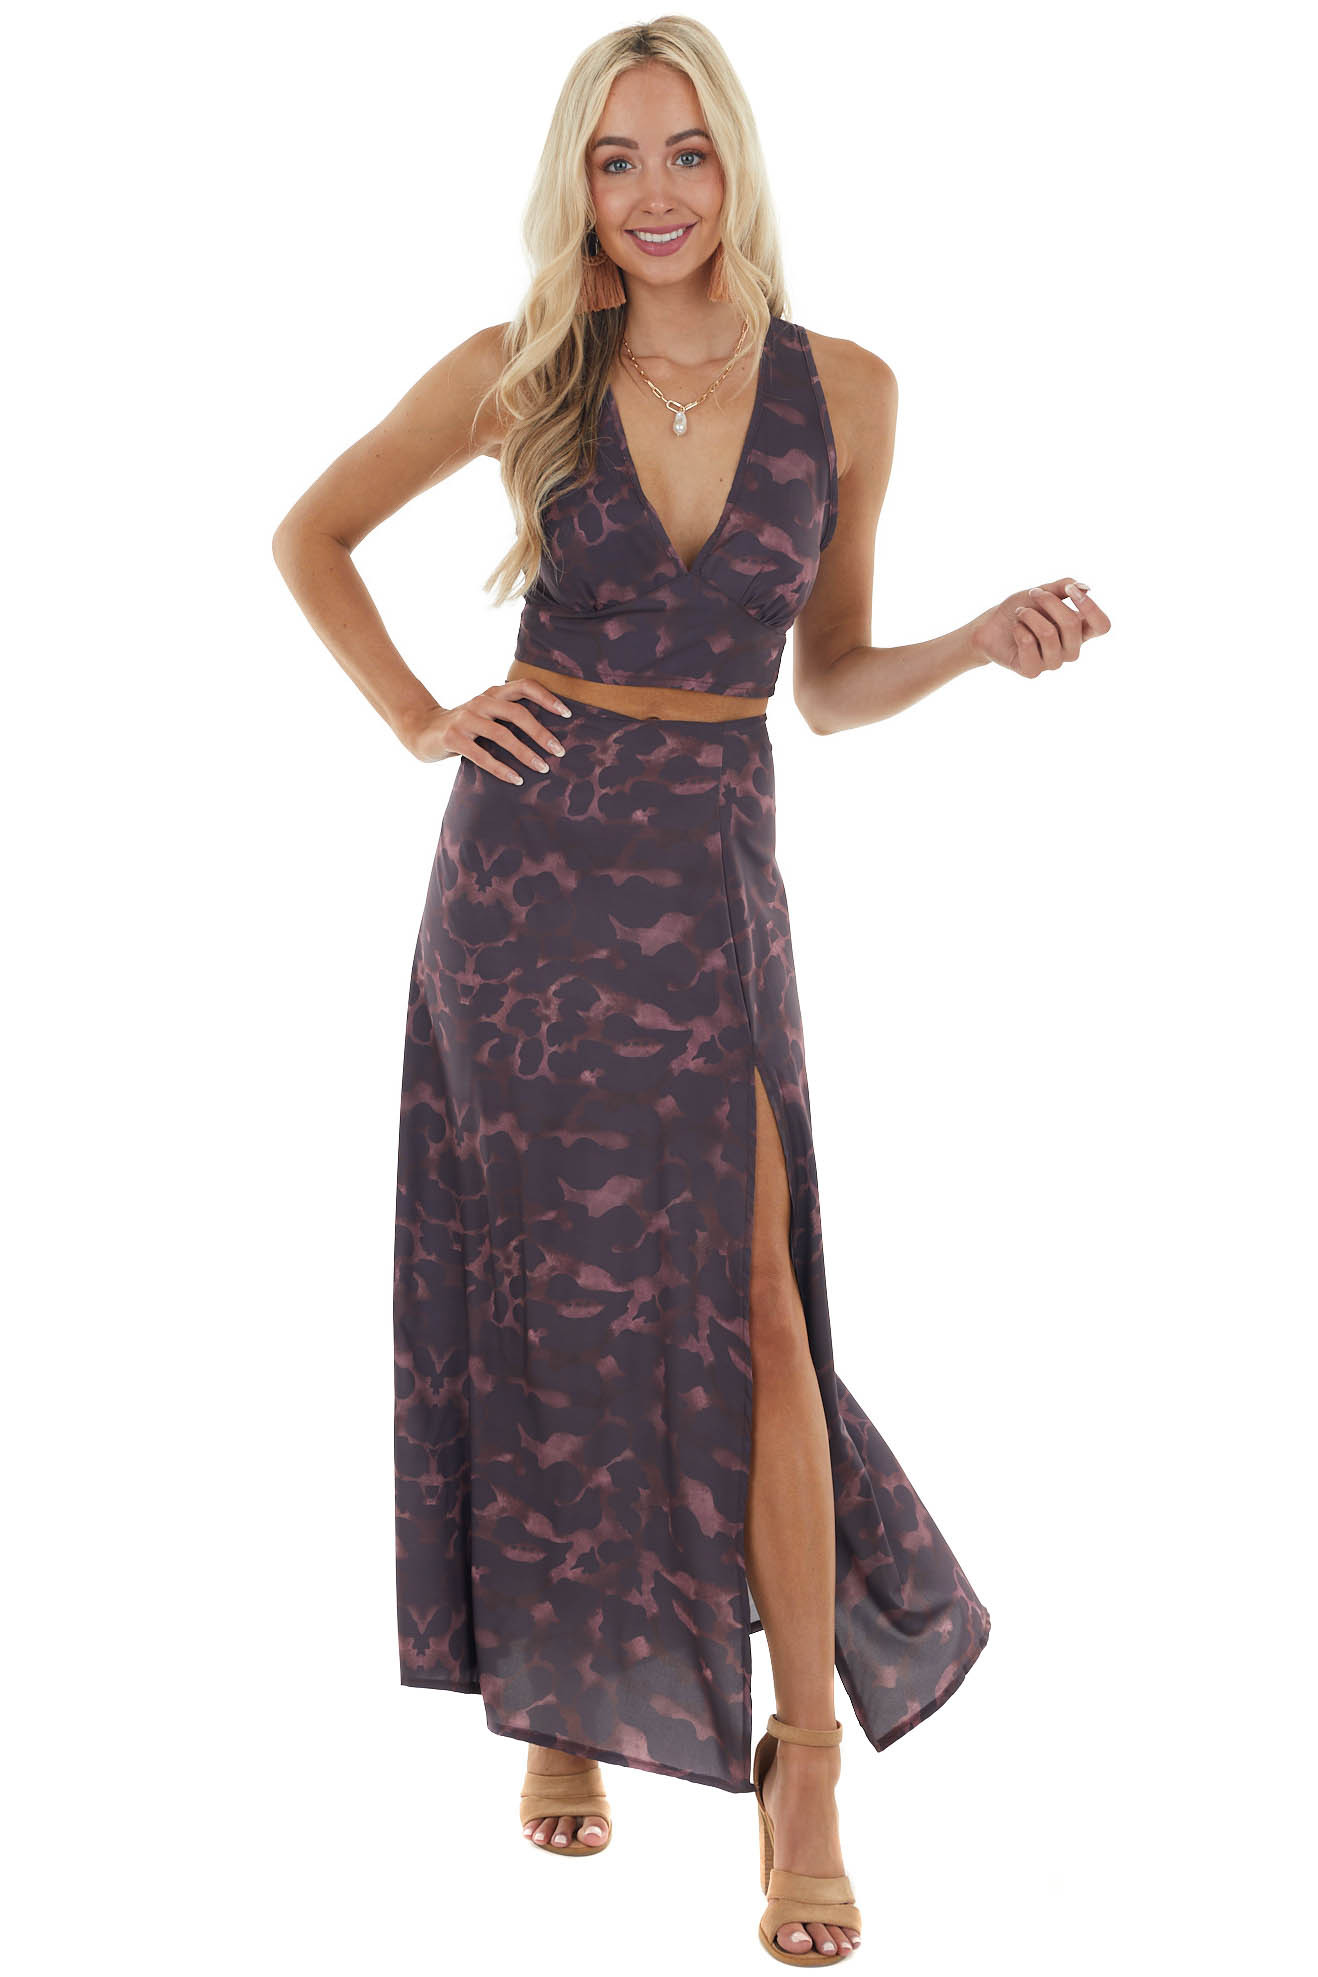 Mahogany Leopard Print Top and Maxi Skirt Two Piece Set